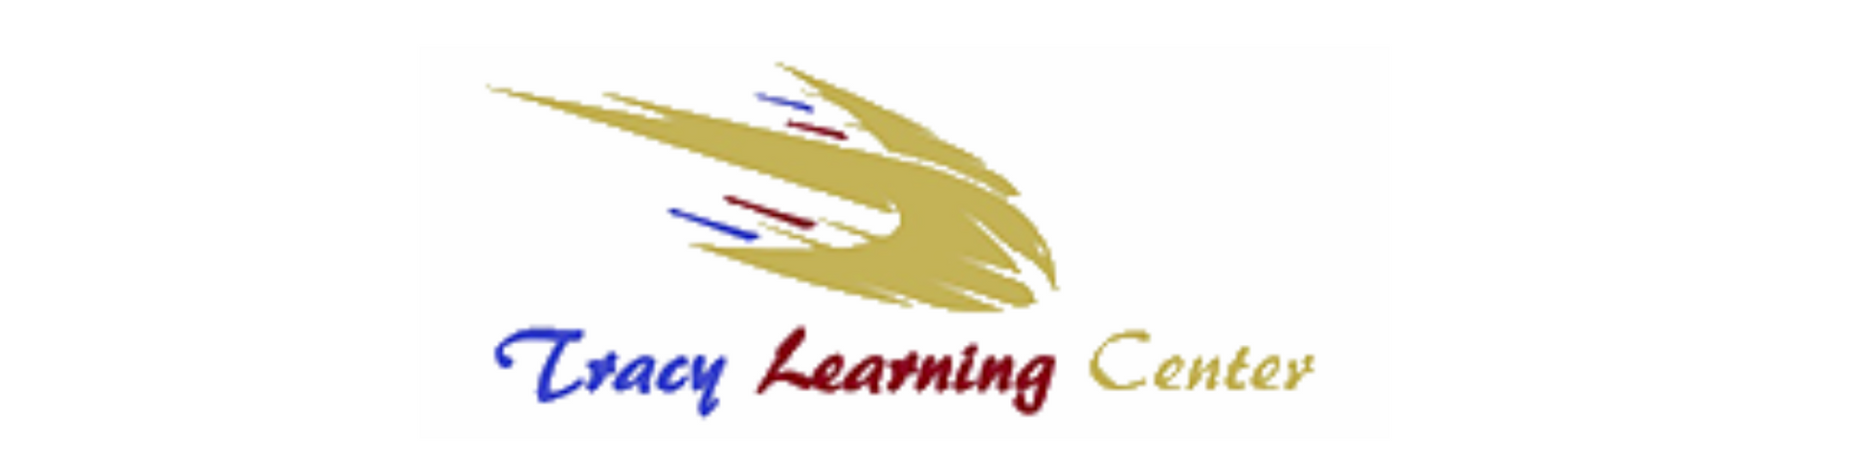 Tracy Learning Center